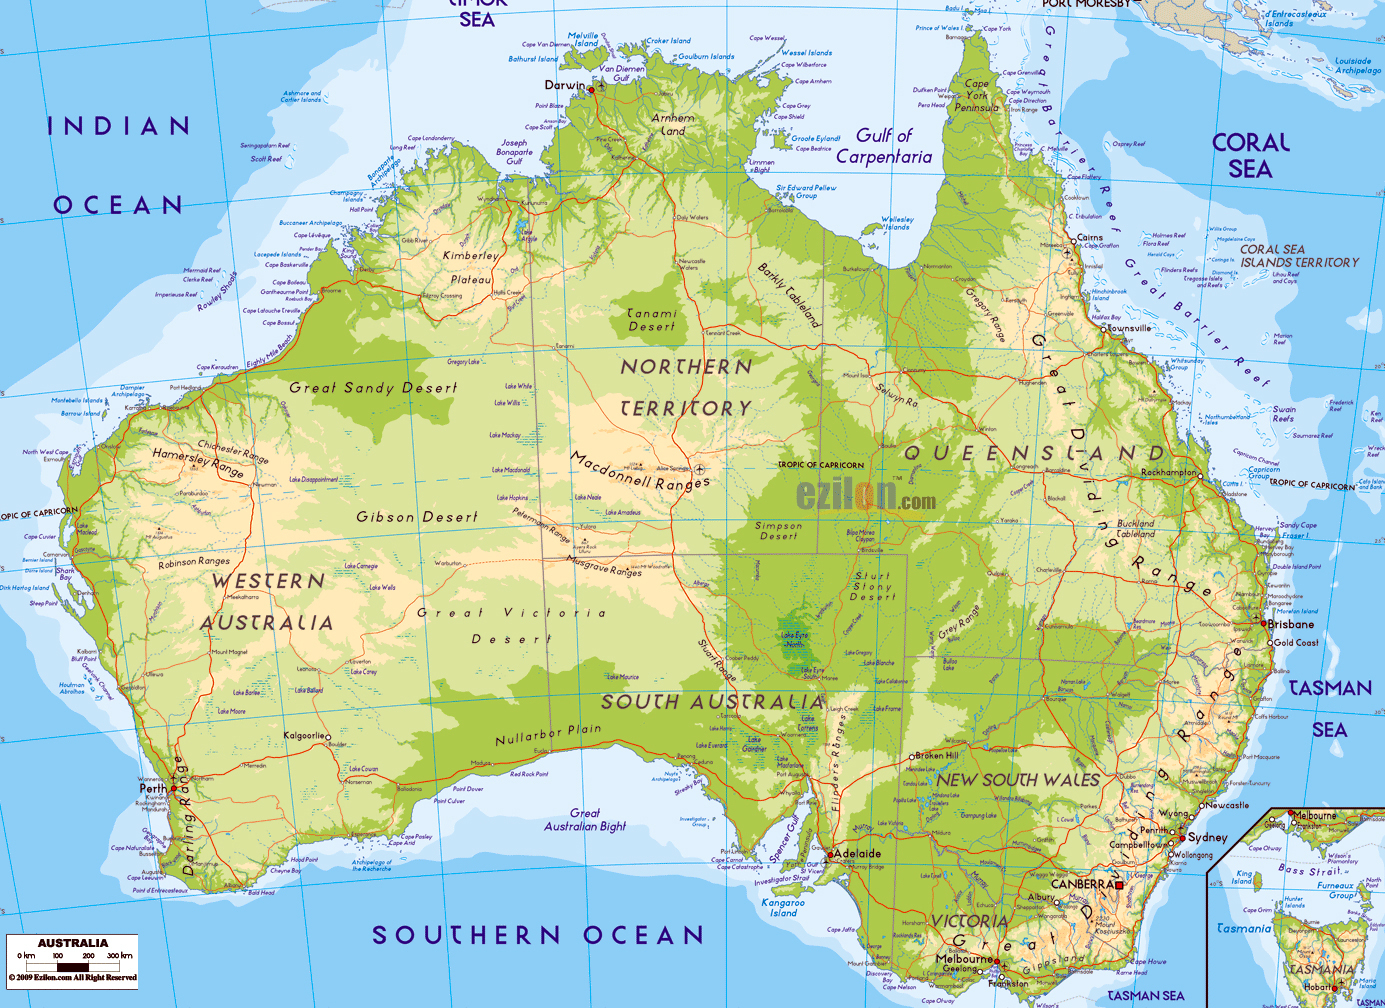 Large Map Of Australia.Large Detailed Physical Map Of Australia Australia Large Detailed